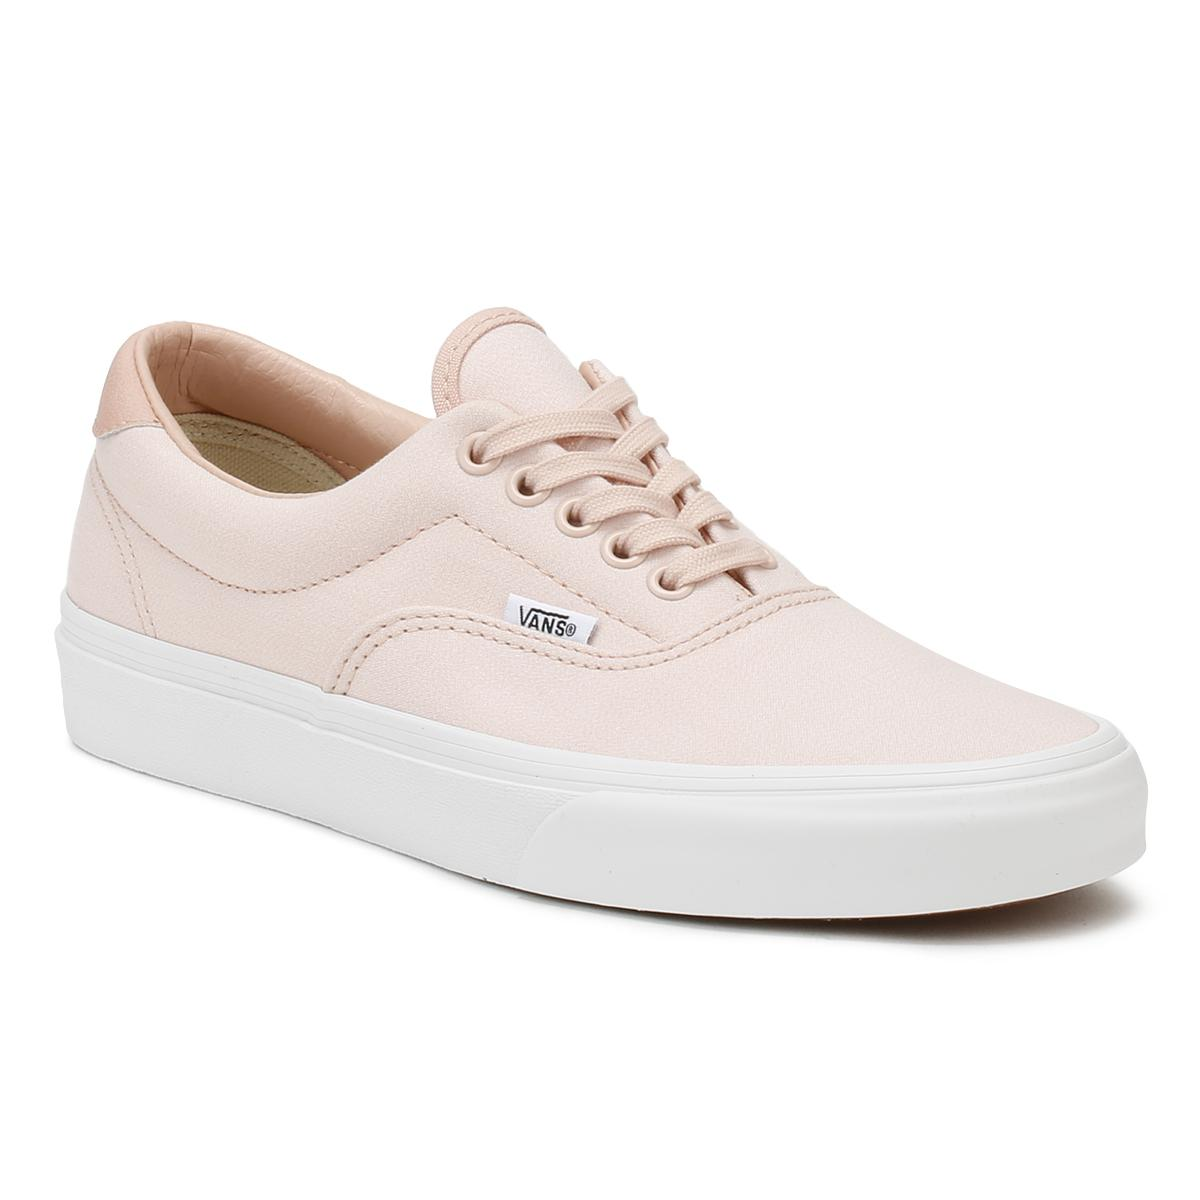 a2a4645e0824 Lyst - Vans Sand   True White Suiting Era 59 Trainers in White